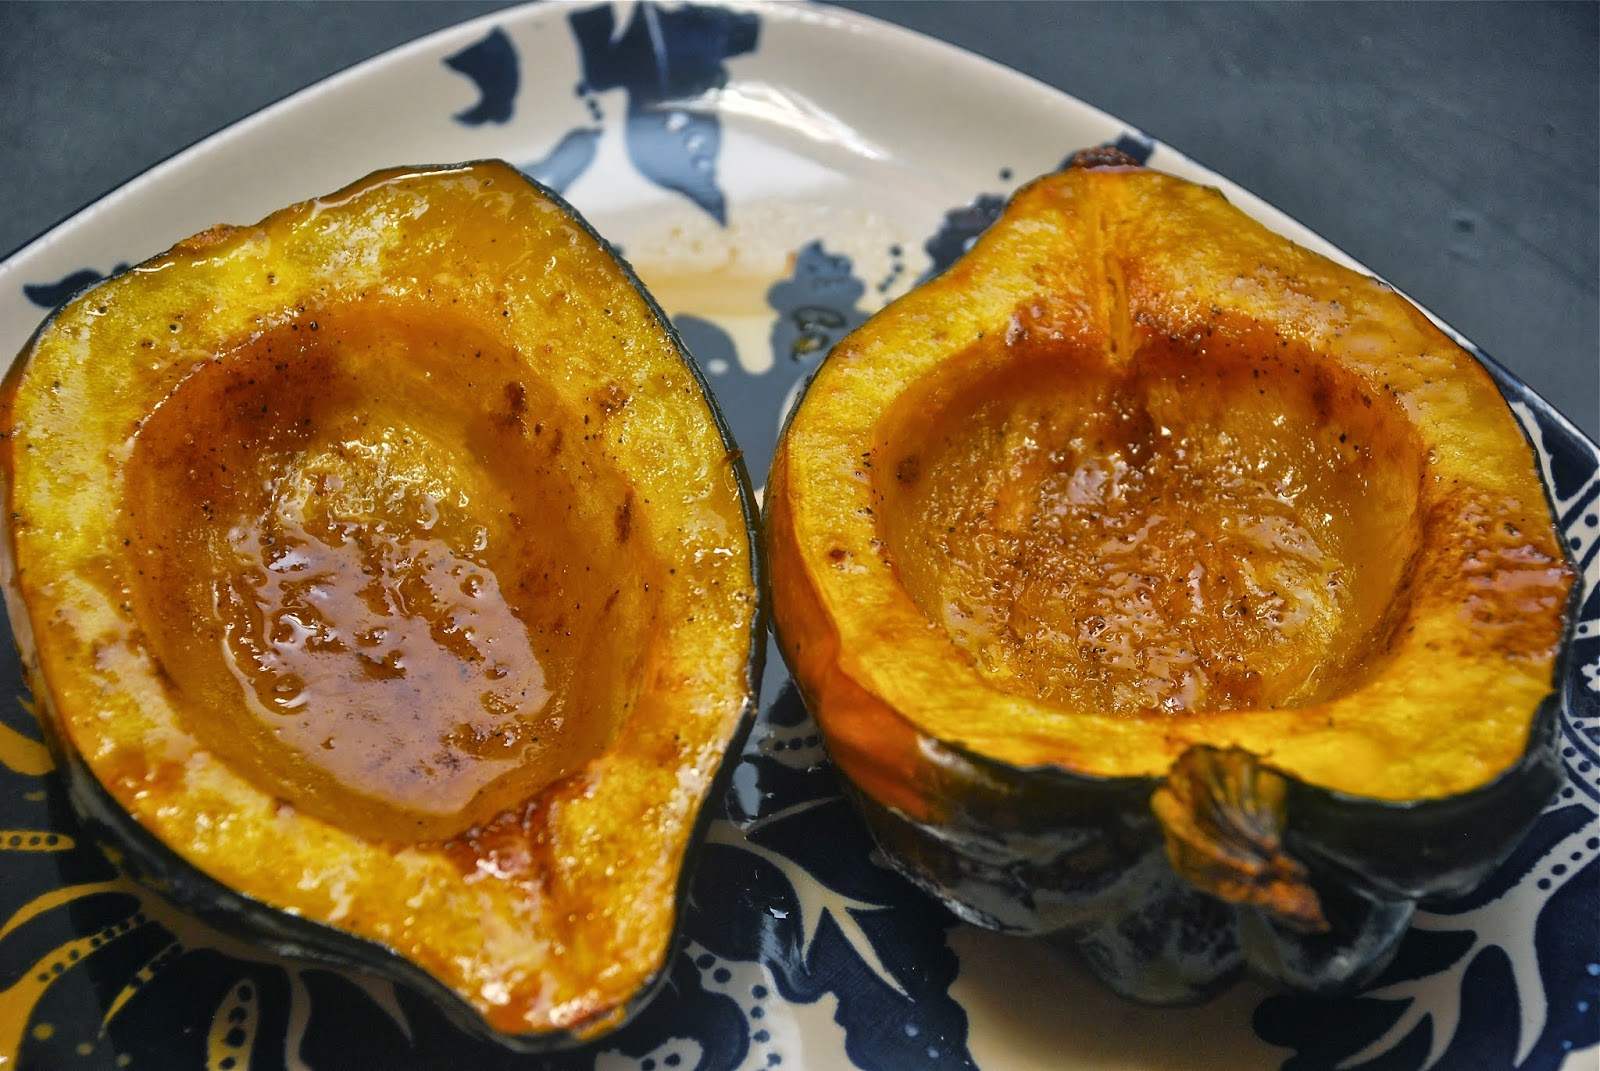 Tomatoes on the Vine: Baked Acorn Squash with Brown Sugar and Butter